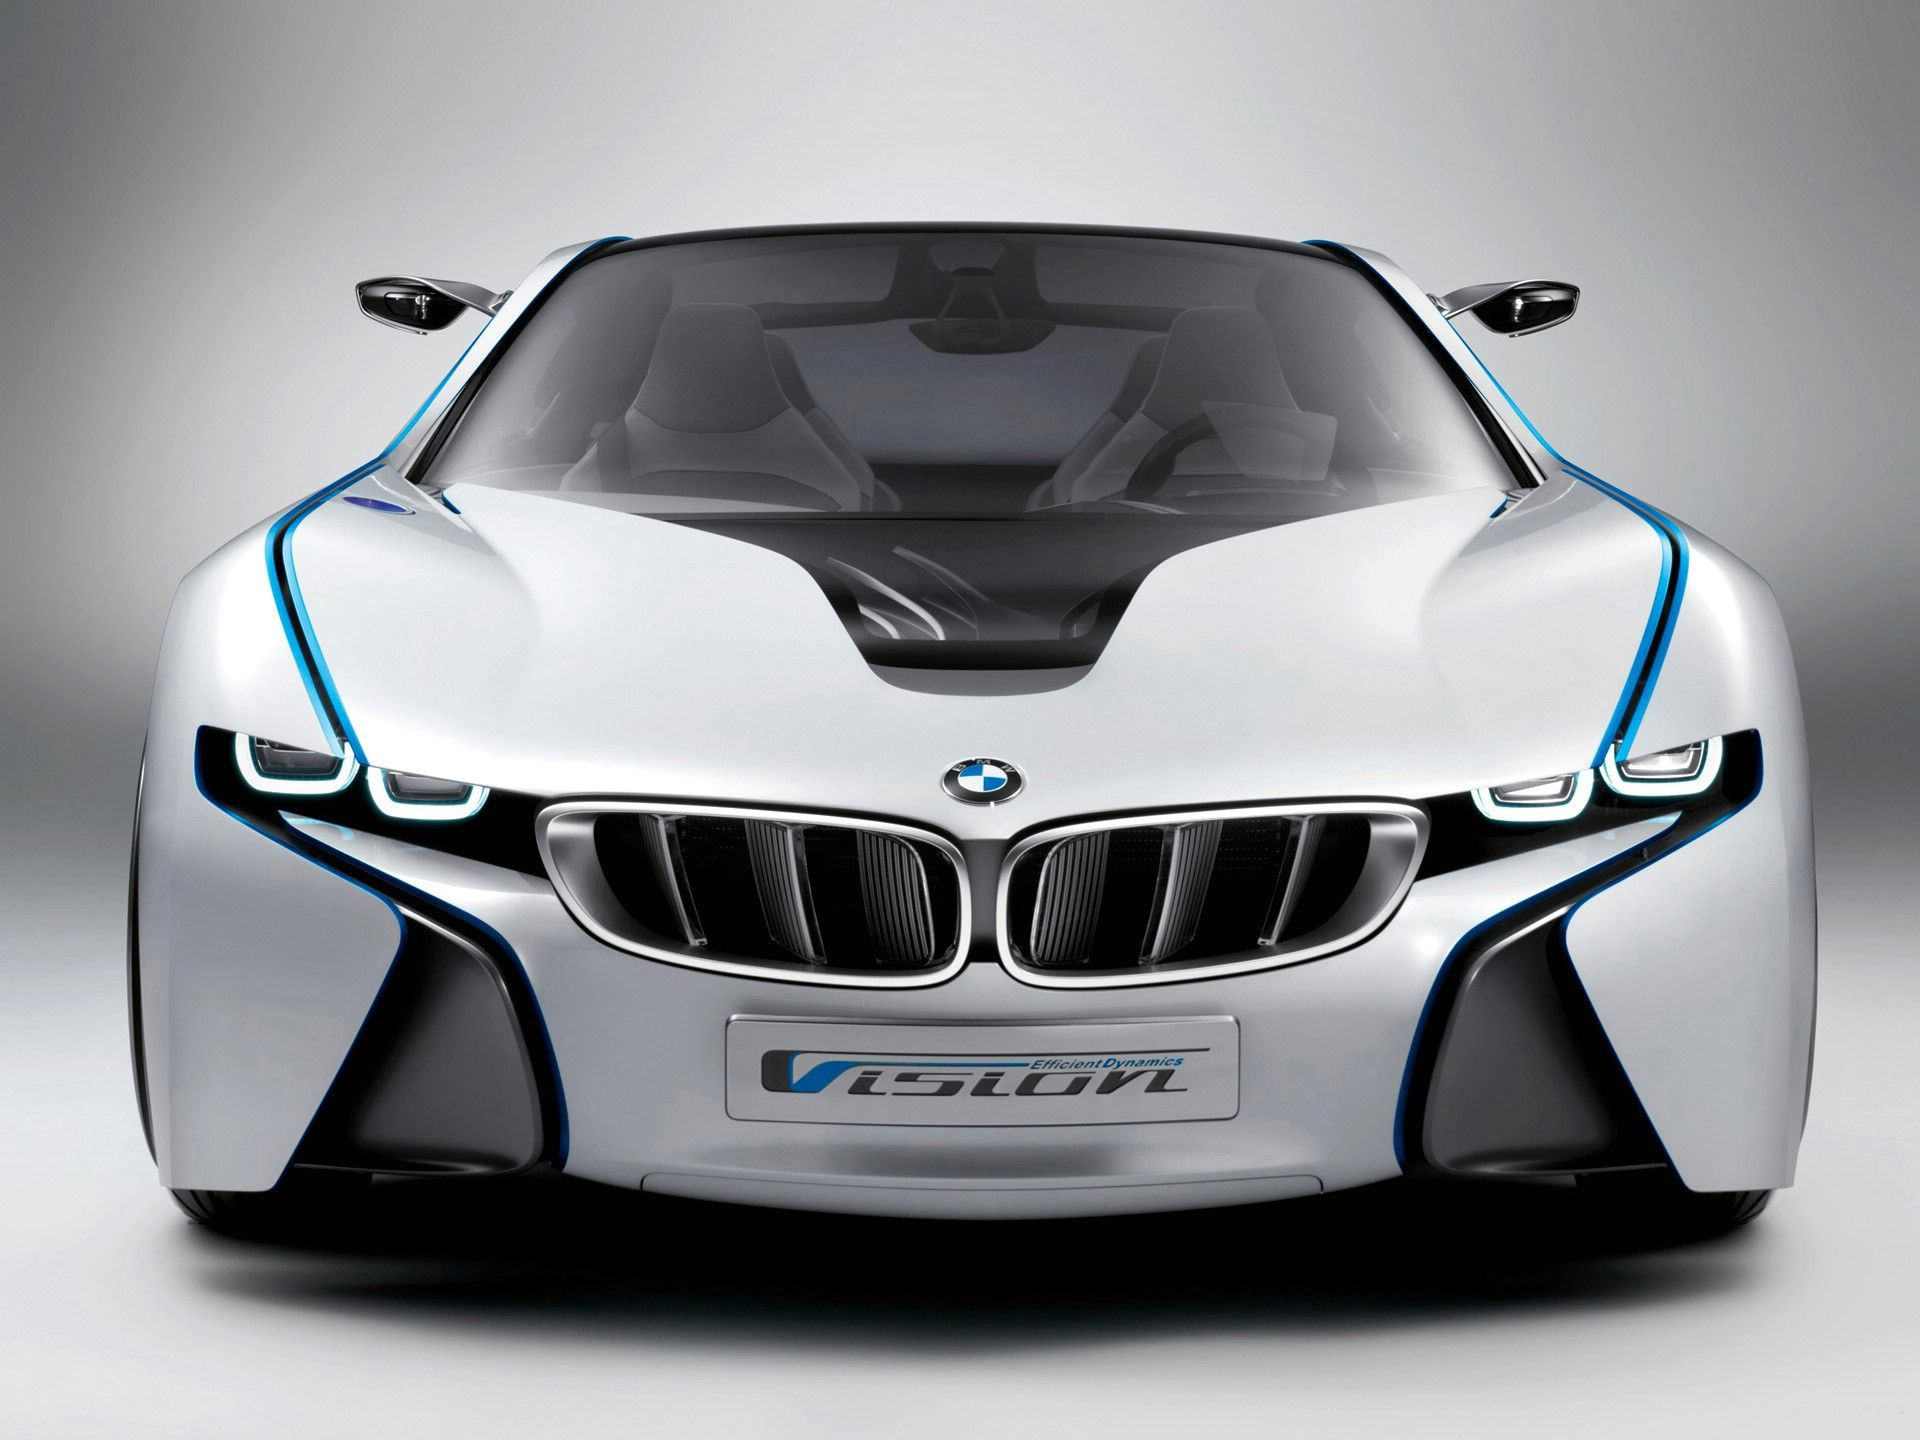 Image For Beautiful Bmw Car Wallpaper Hd Places To Visit